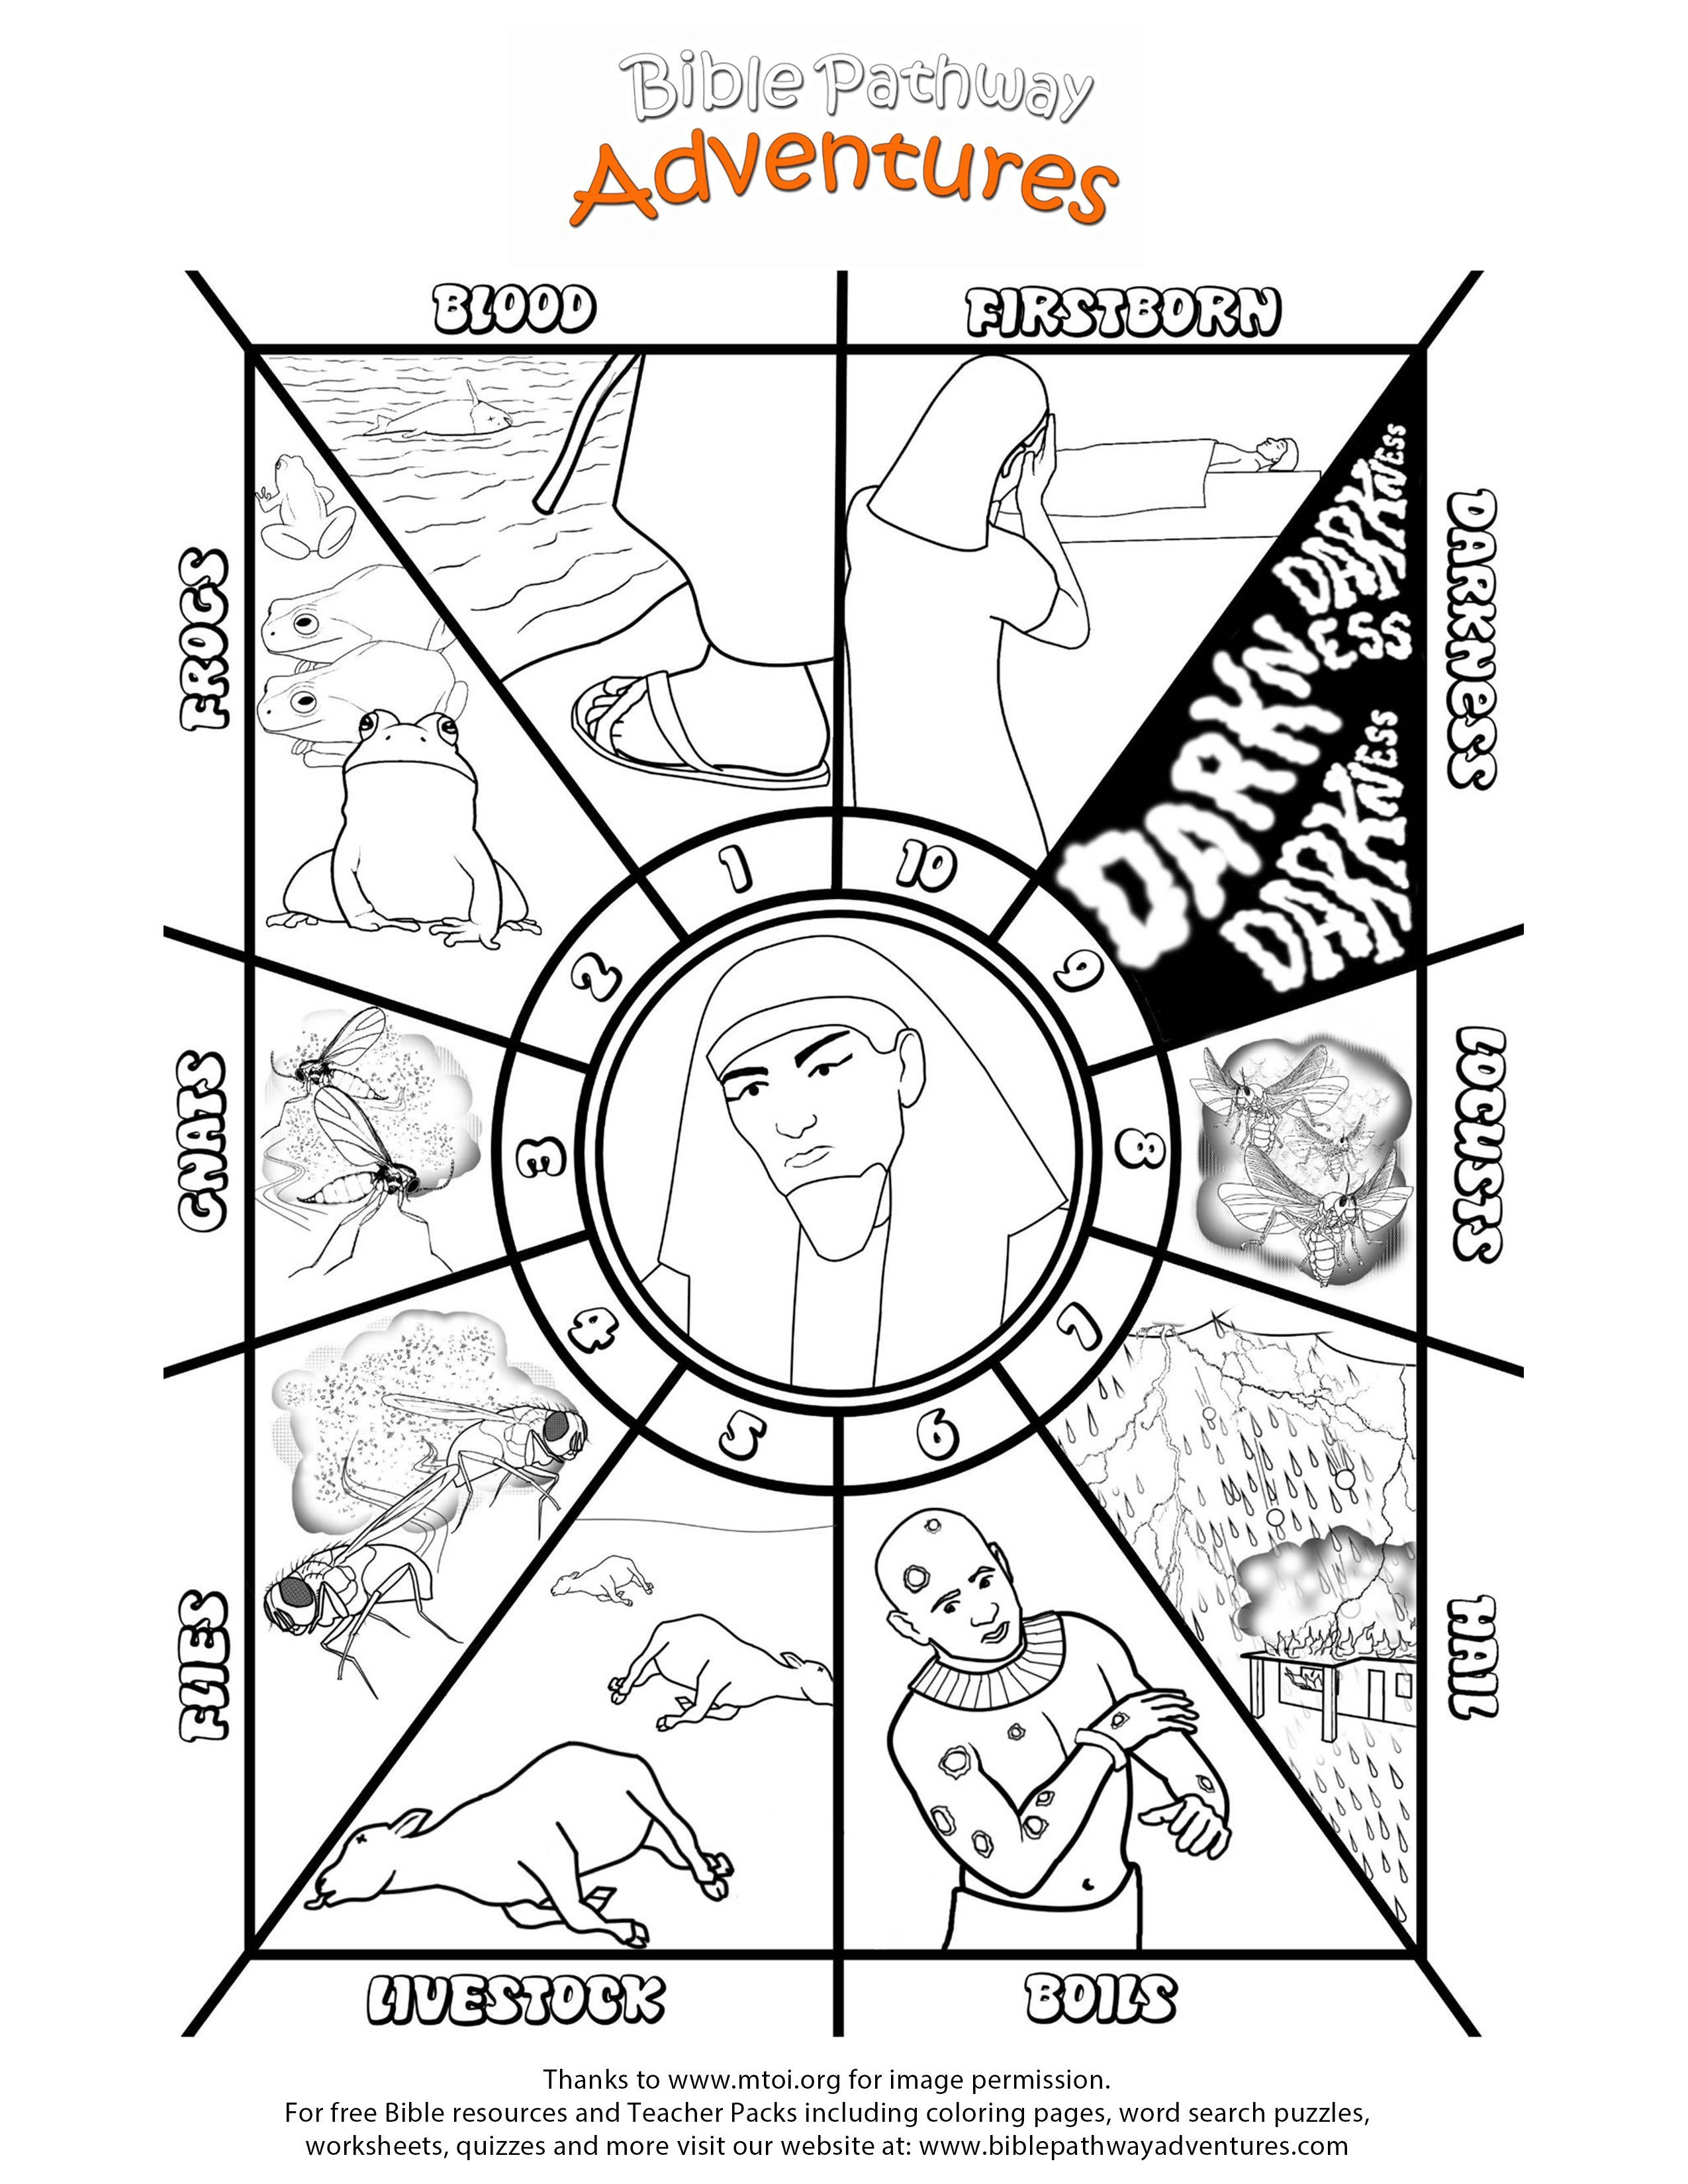 picture regarding 10 Plagues Printable named Printable Coloring Web page: 10 Plagues of Egypt Bible